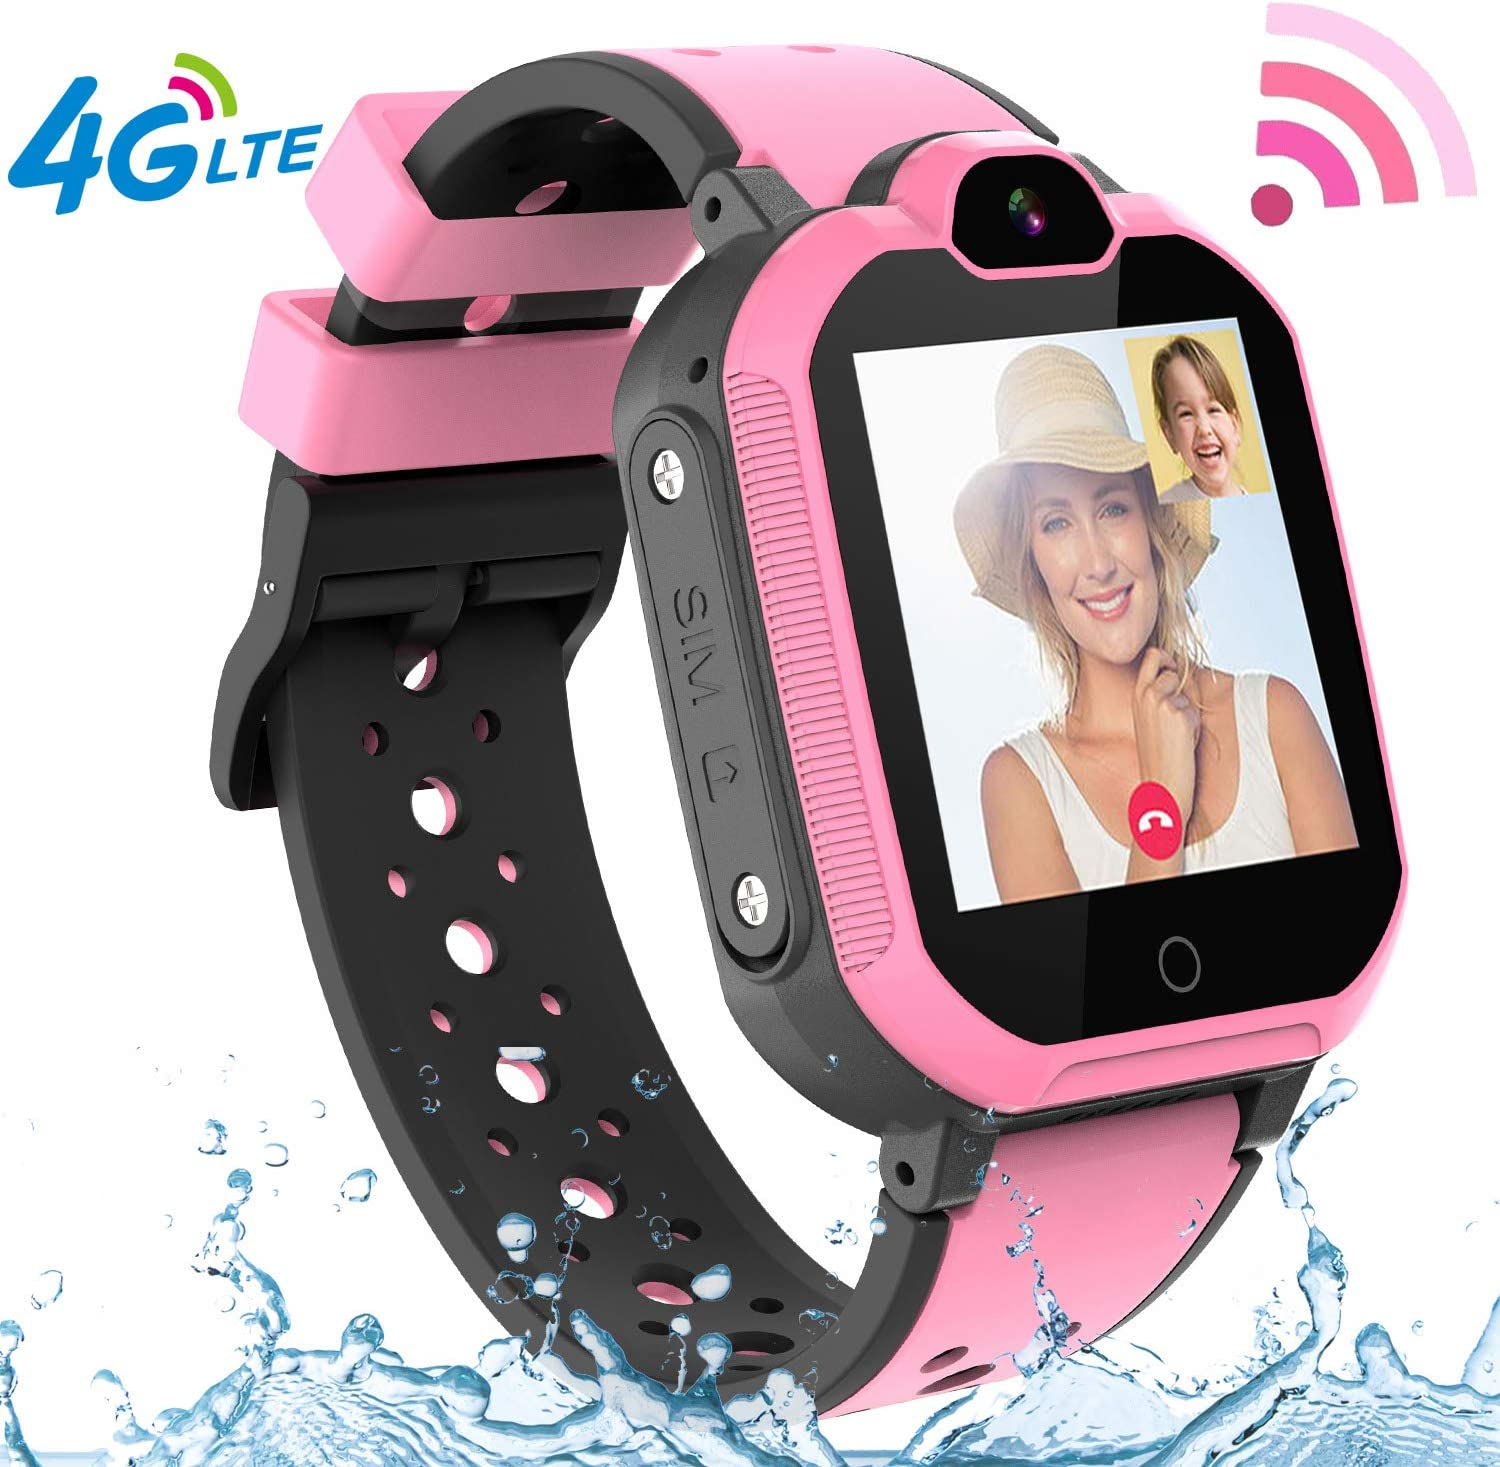 4G GPS Kids Smartwatch Phone - Boys Girls Waterproof Watch with GPS Locator 2 Way Call Camera Voice & Video Chat SOS Alarm Pedometer WiFi Wrist Watch ...